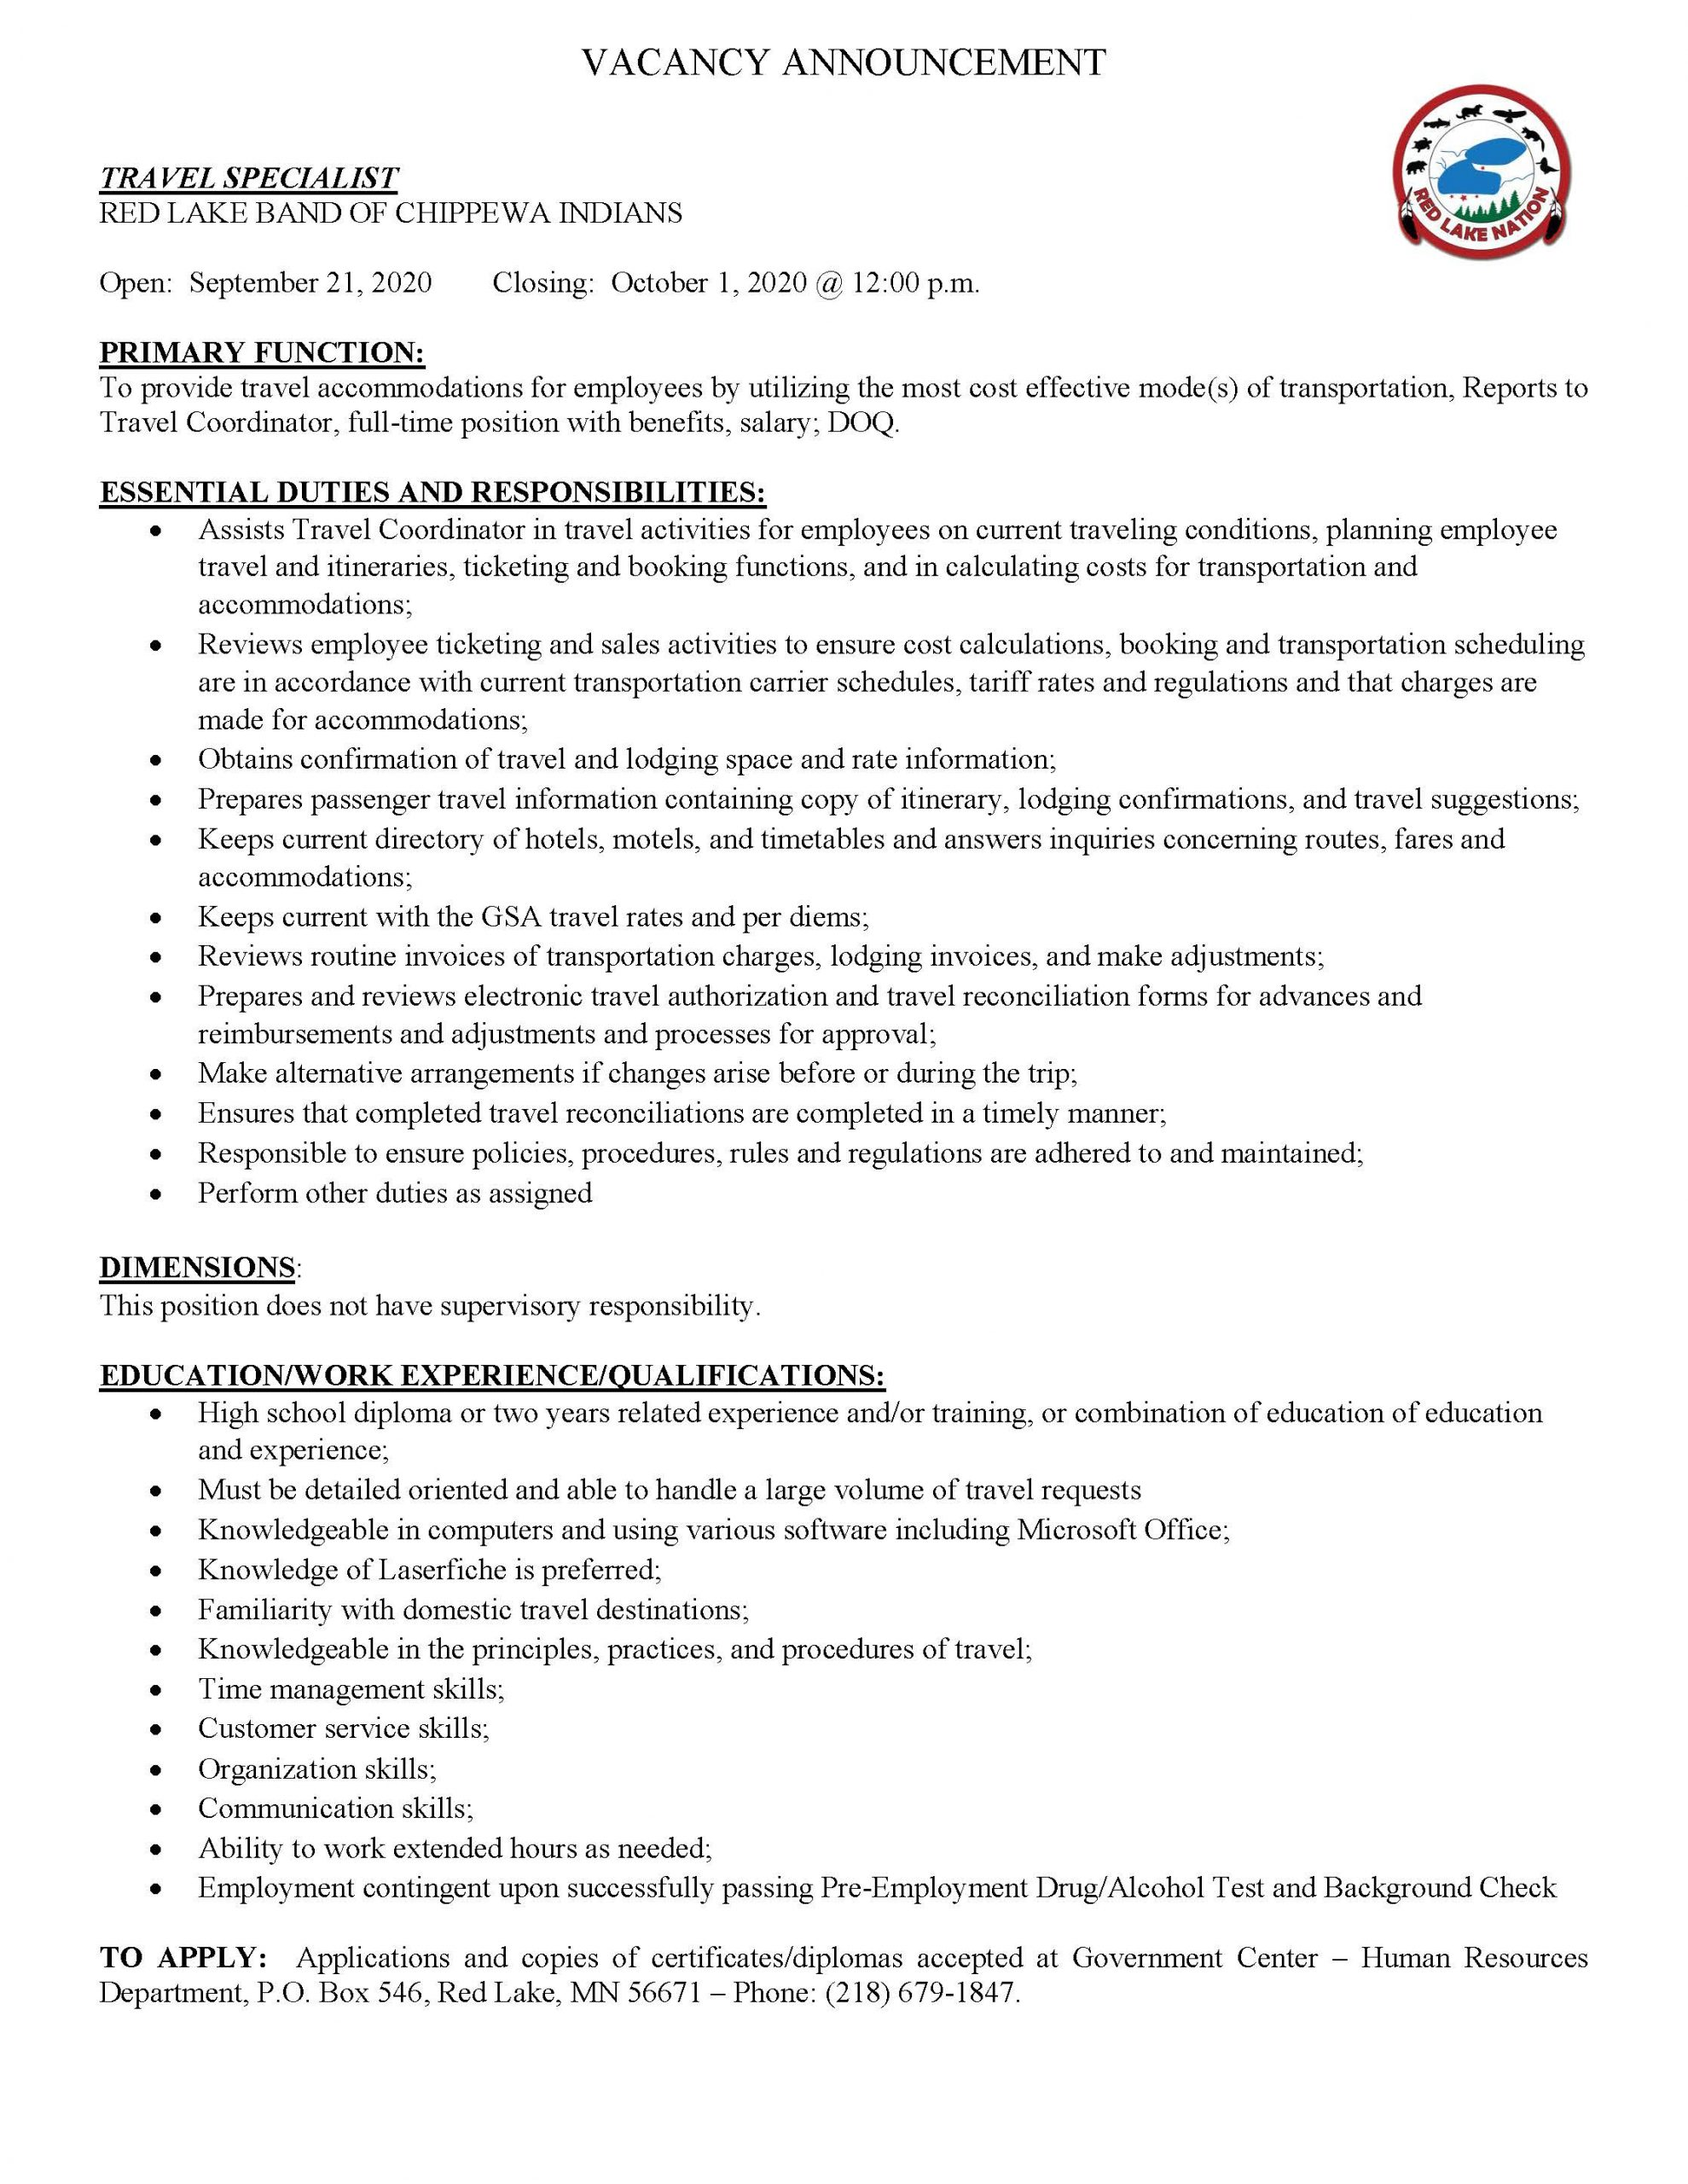 Travel Specialist-Red Lake Band Chippewa Indians Job Posting-9-14-2020